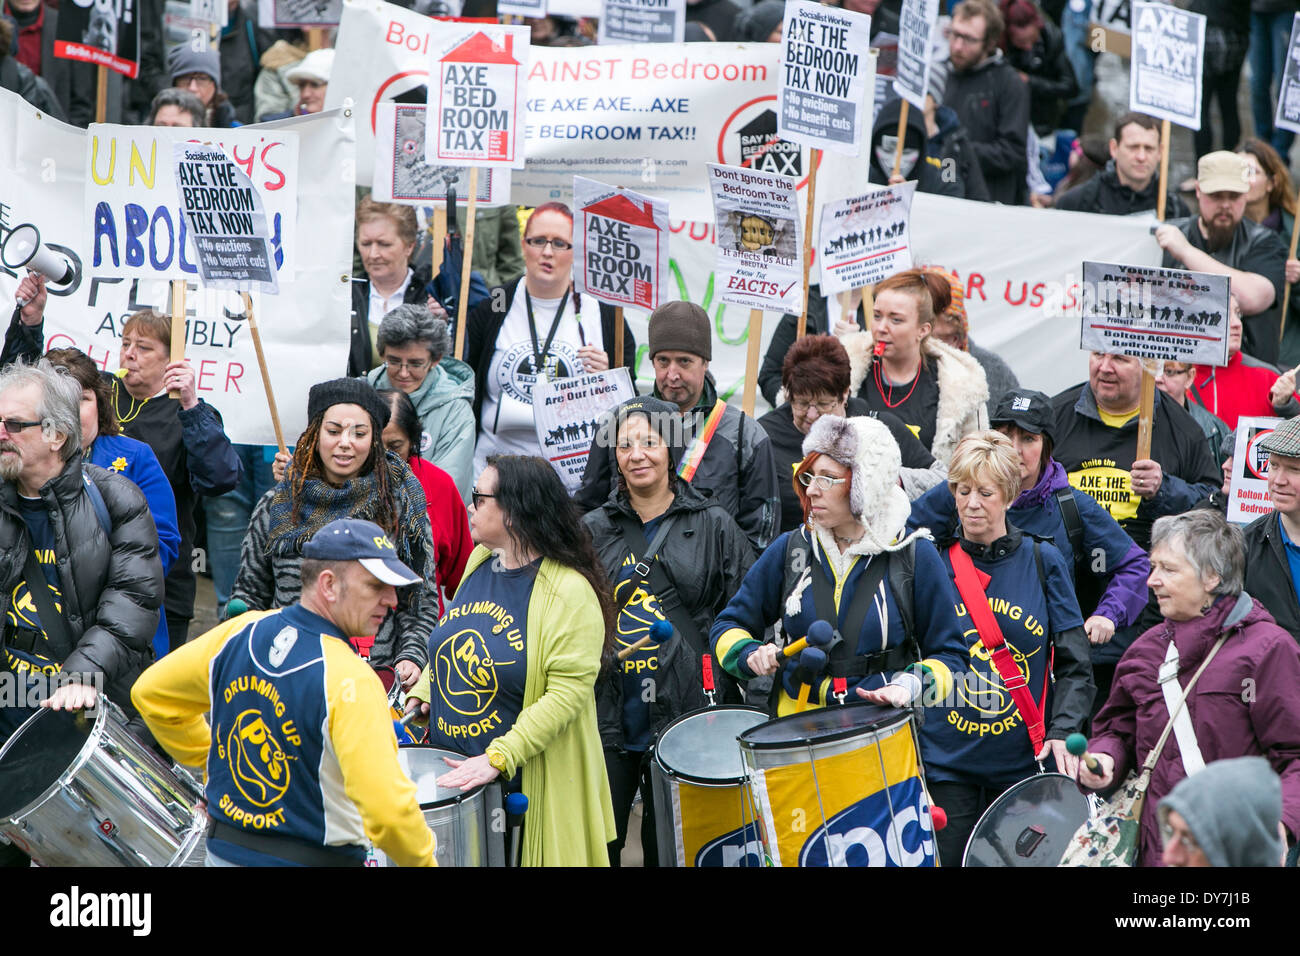 Protestors march through Manchester City Centre today (Sat 05/04/14) in opposition to the bedroom tax. - Stock Image